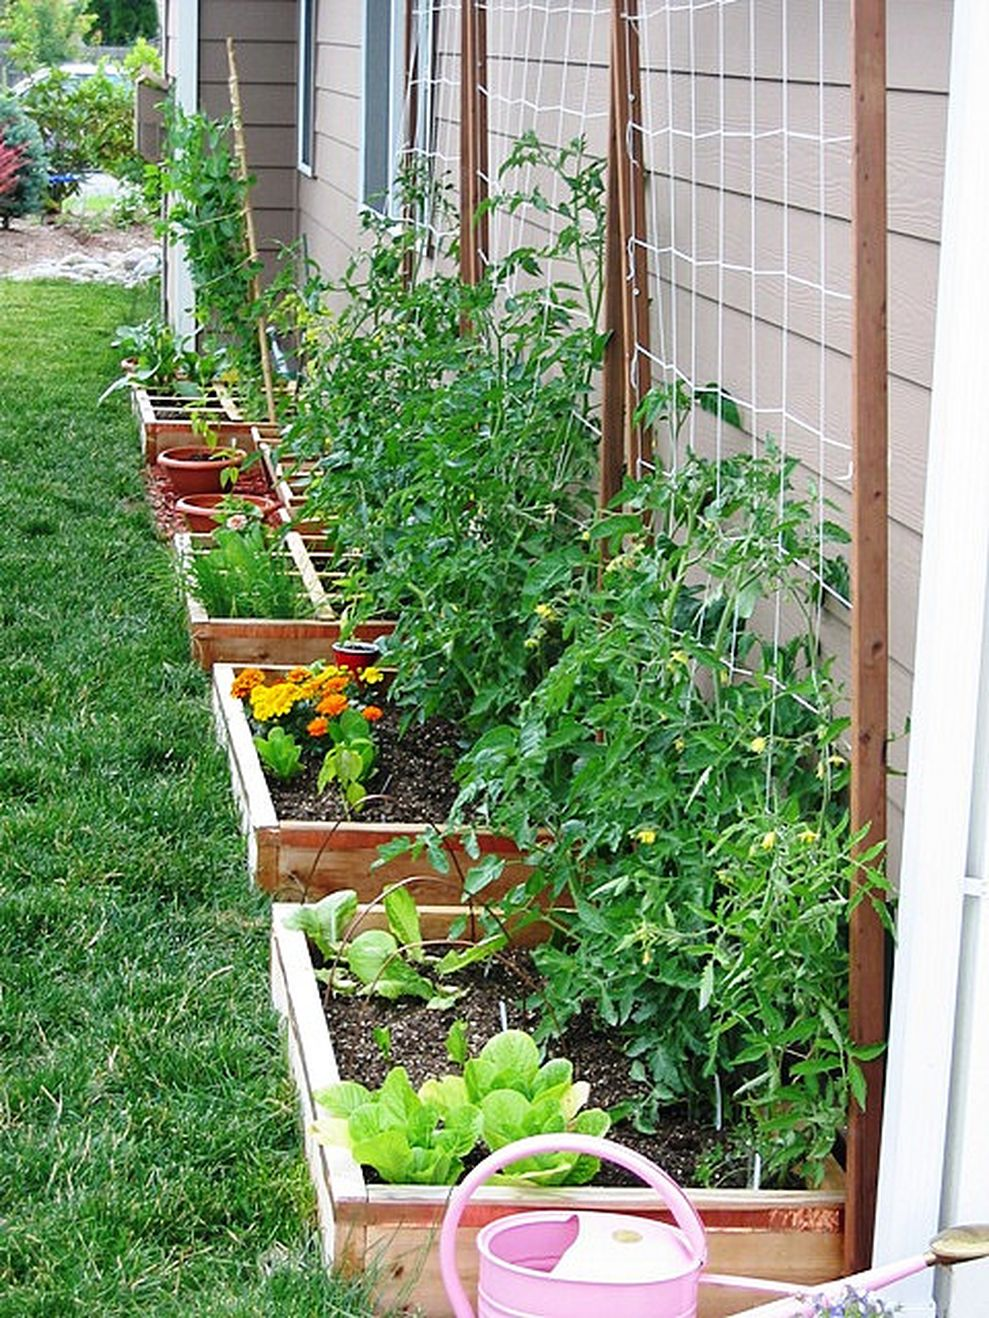 Affordable backyard vegetable garden designs ideas 35 ... on Backyard Garden Design id=24560